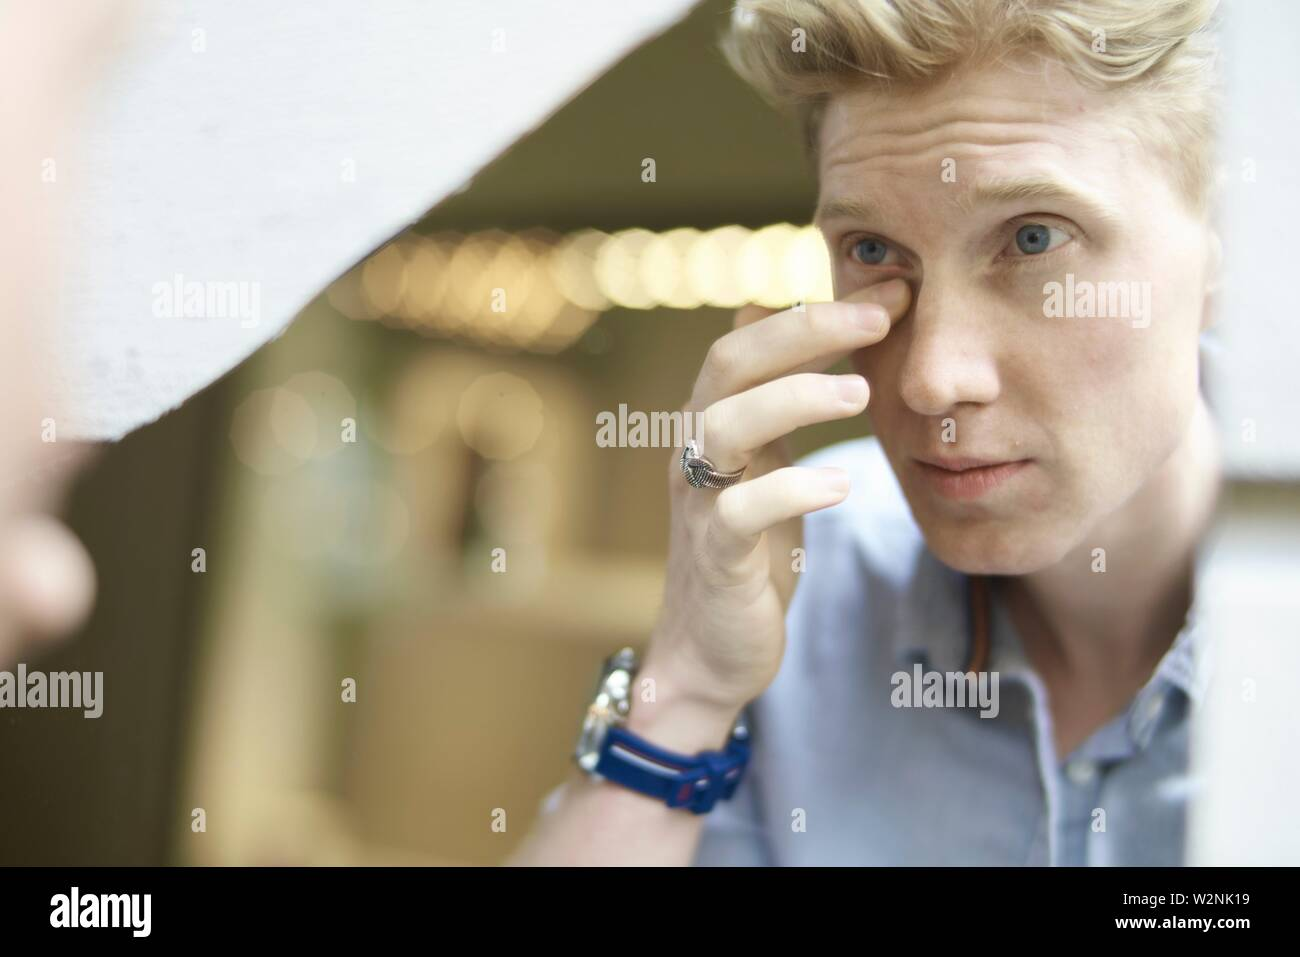 young man checking his appearance in mirror, eye circles - Stock Image